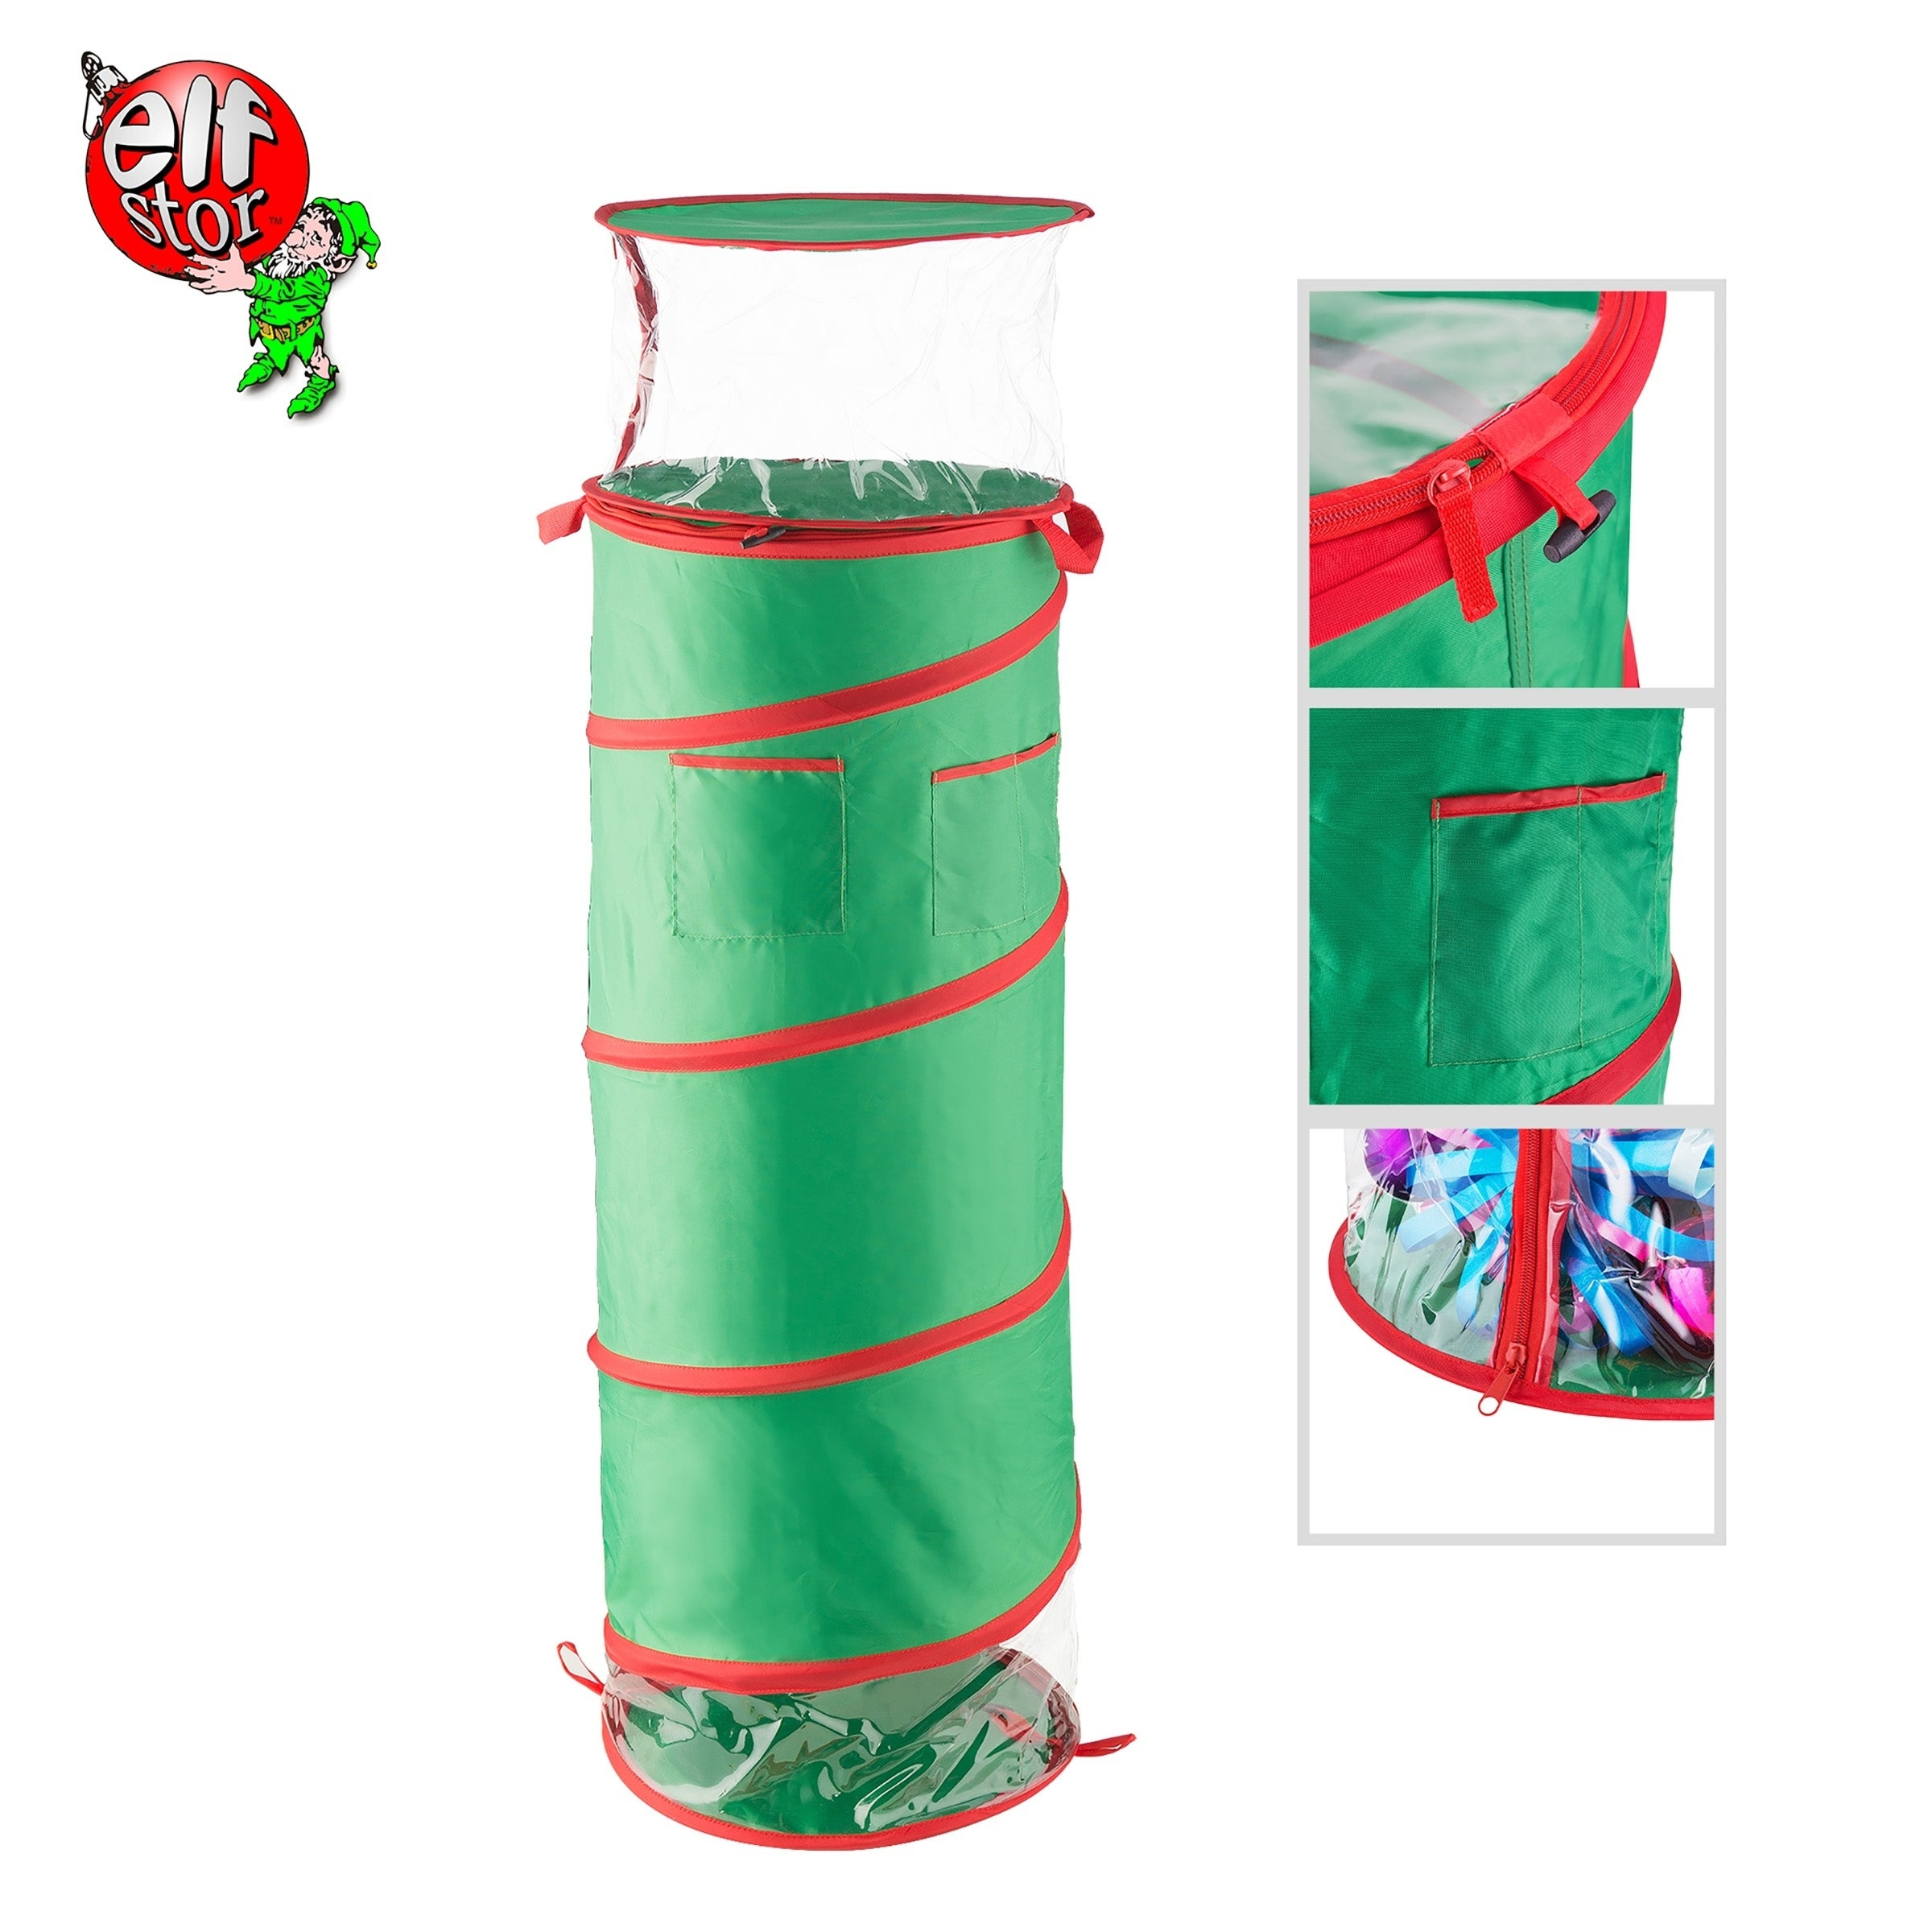 Elf Stor 40 Tall Pop Up Gift Wrap Storage Fold Able Bag Removable Bow Bag On Sale Overstock 23495002